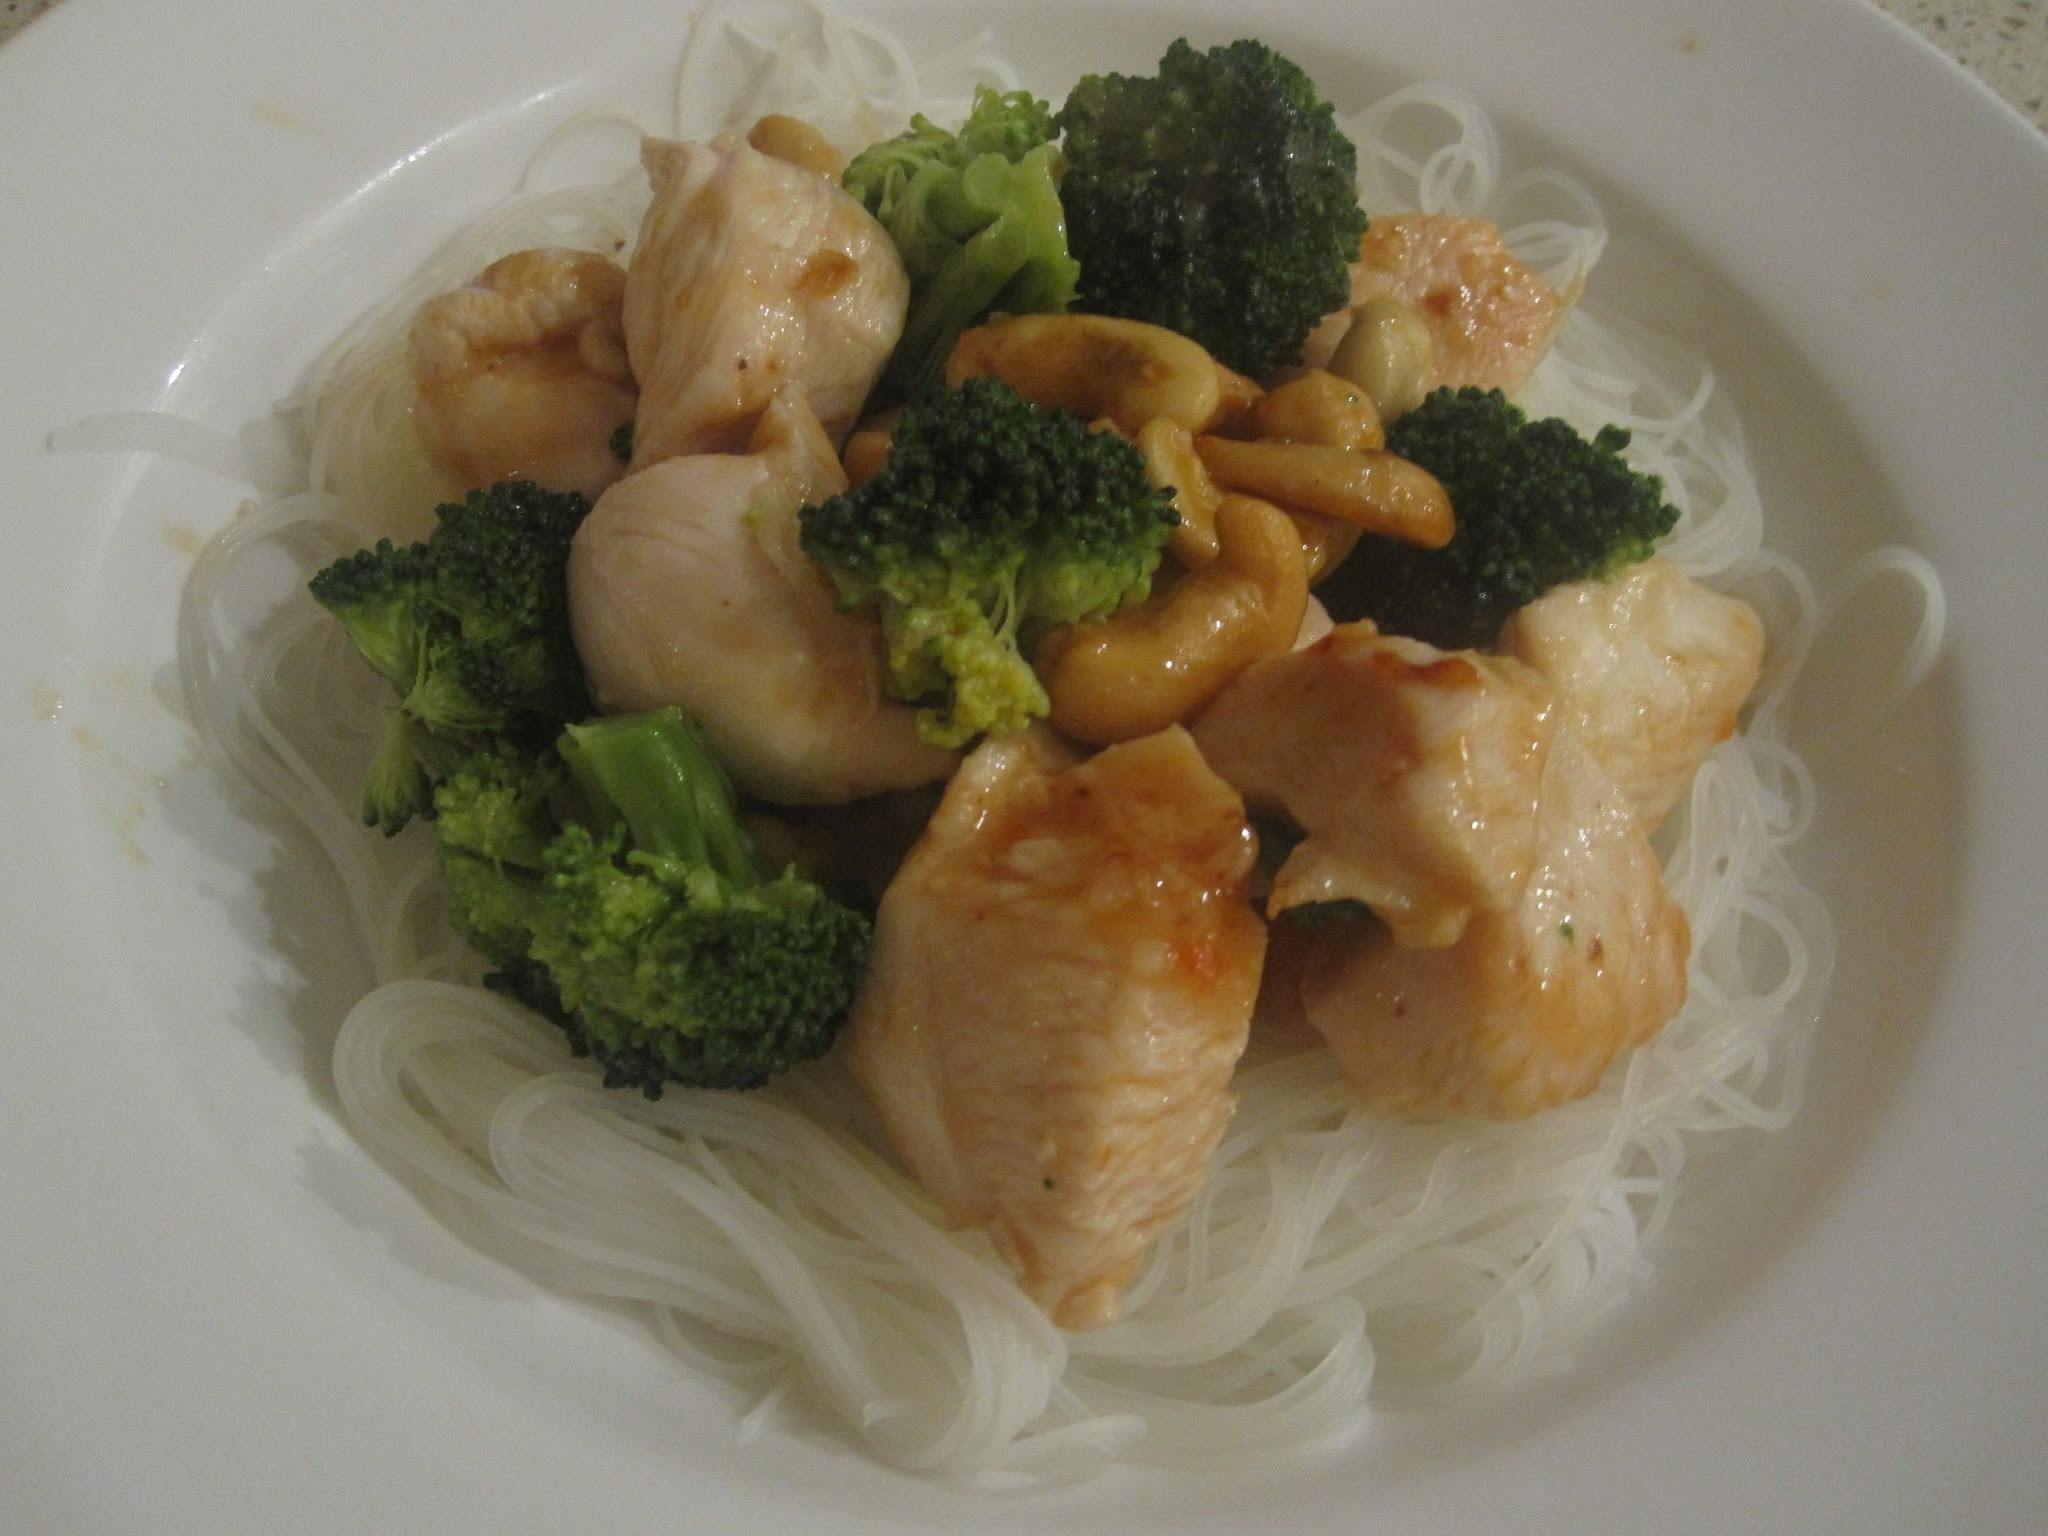 Chicken honey chilli with broccoli on vermicelli